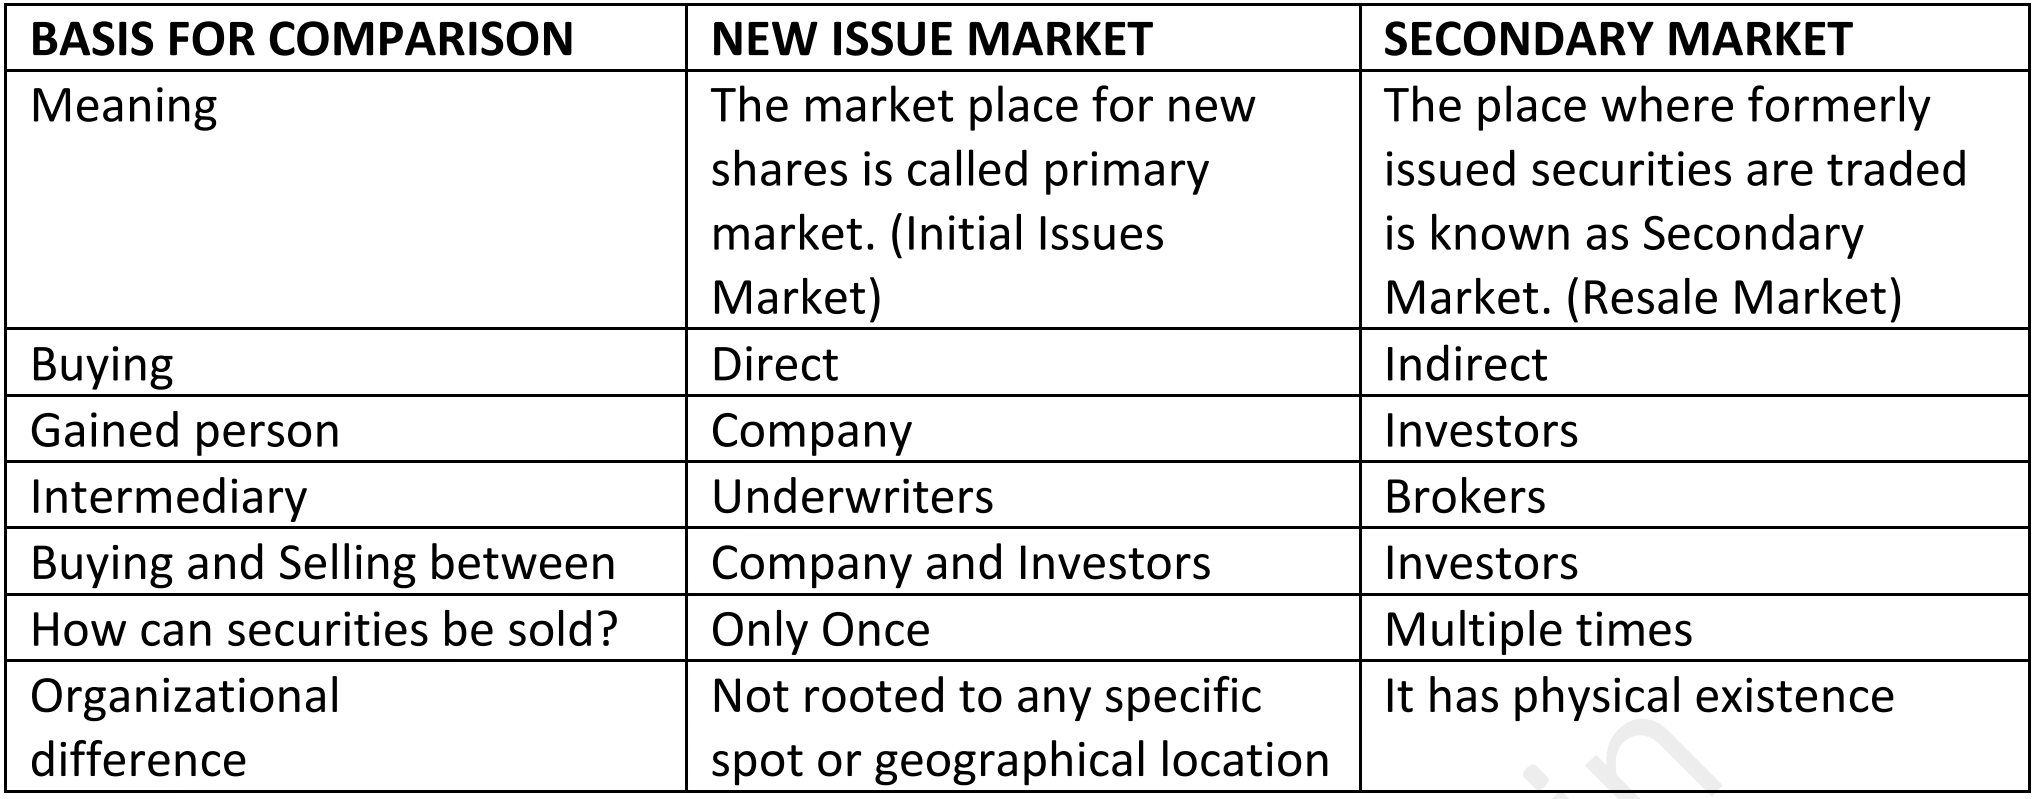 12th commerce guide Chapter 4: FINANCIAL MARKETS - New reduced syllabus 2021 - Book back Question and answer guide